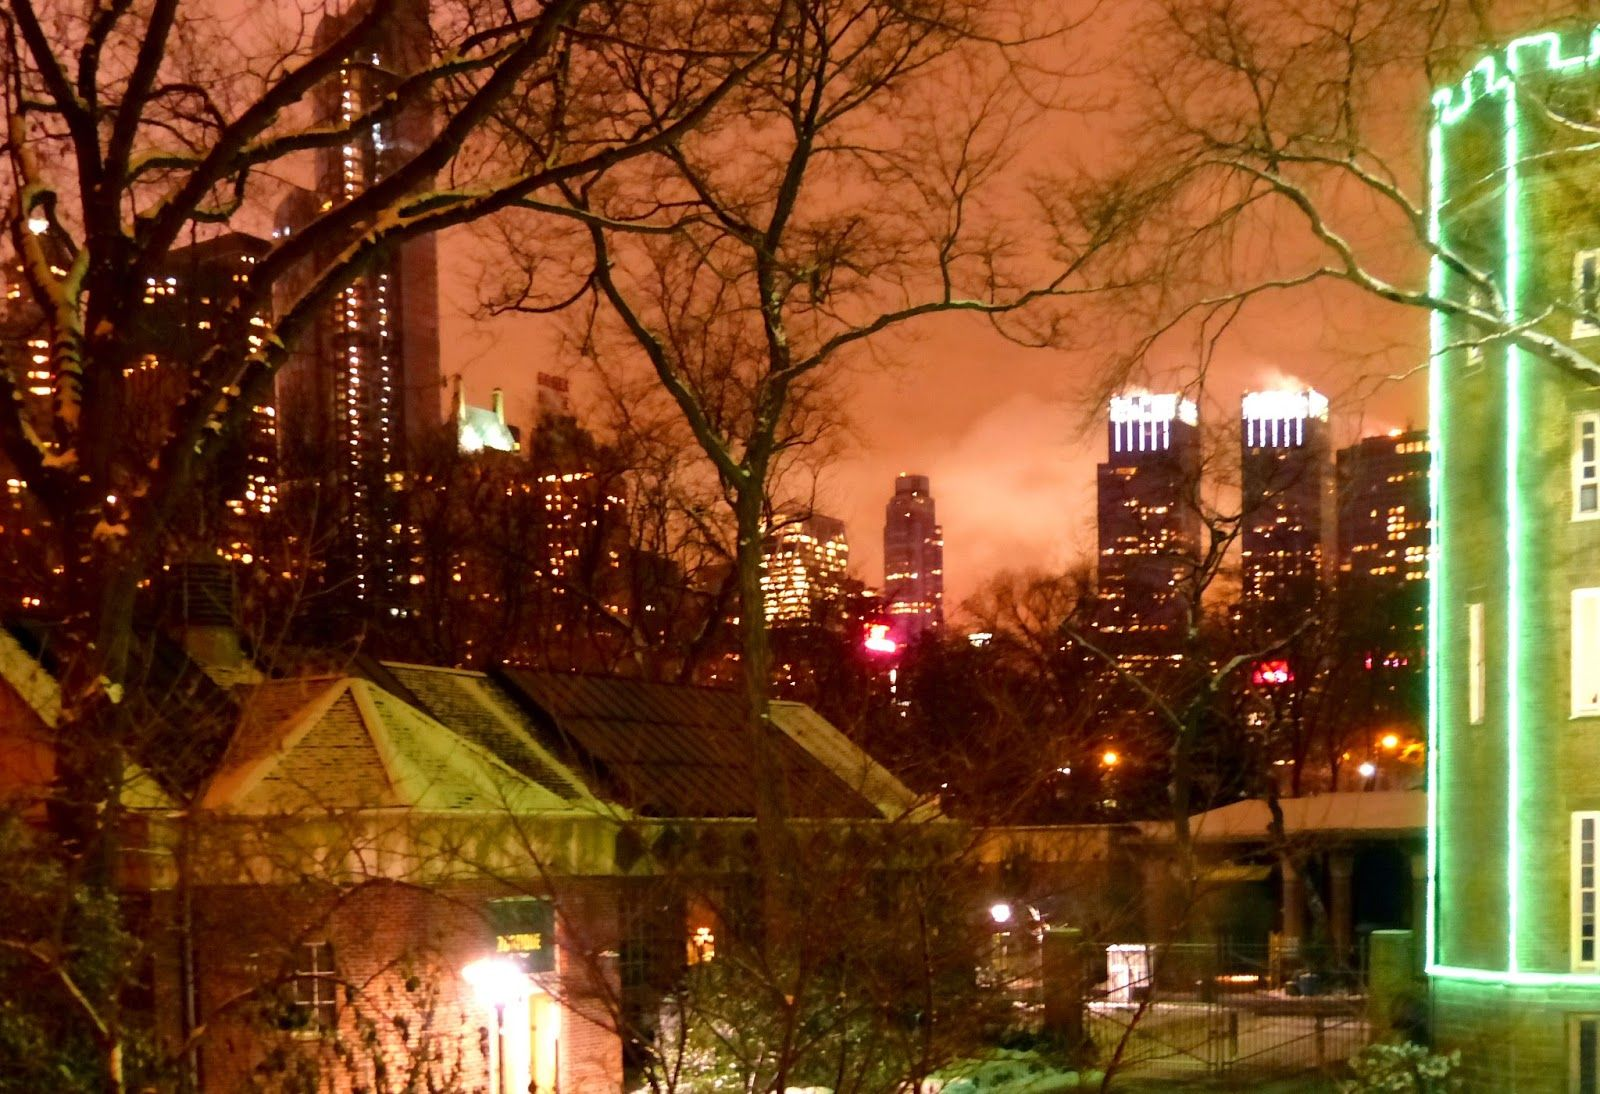 Edge of snowy Central Park Zoo at night.